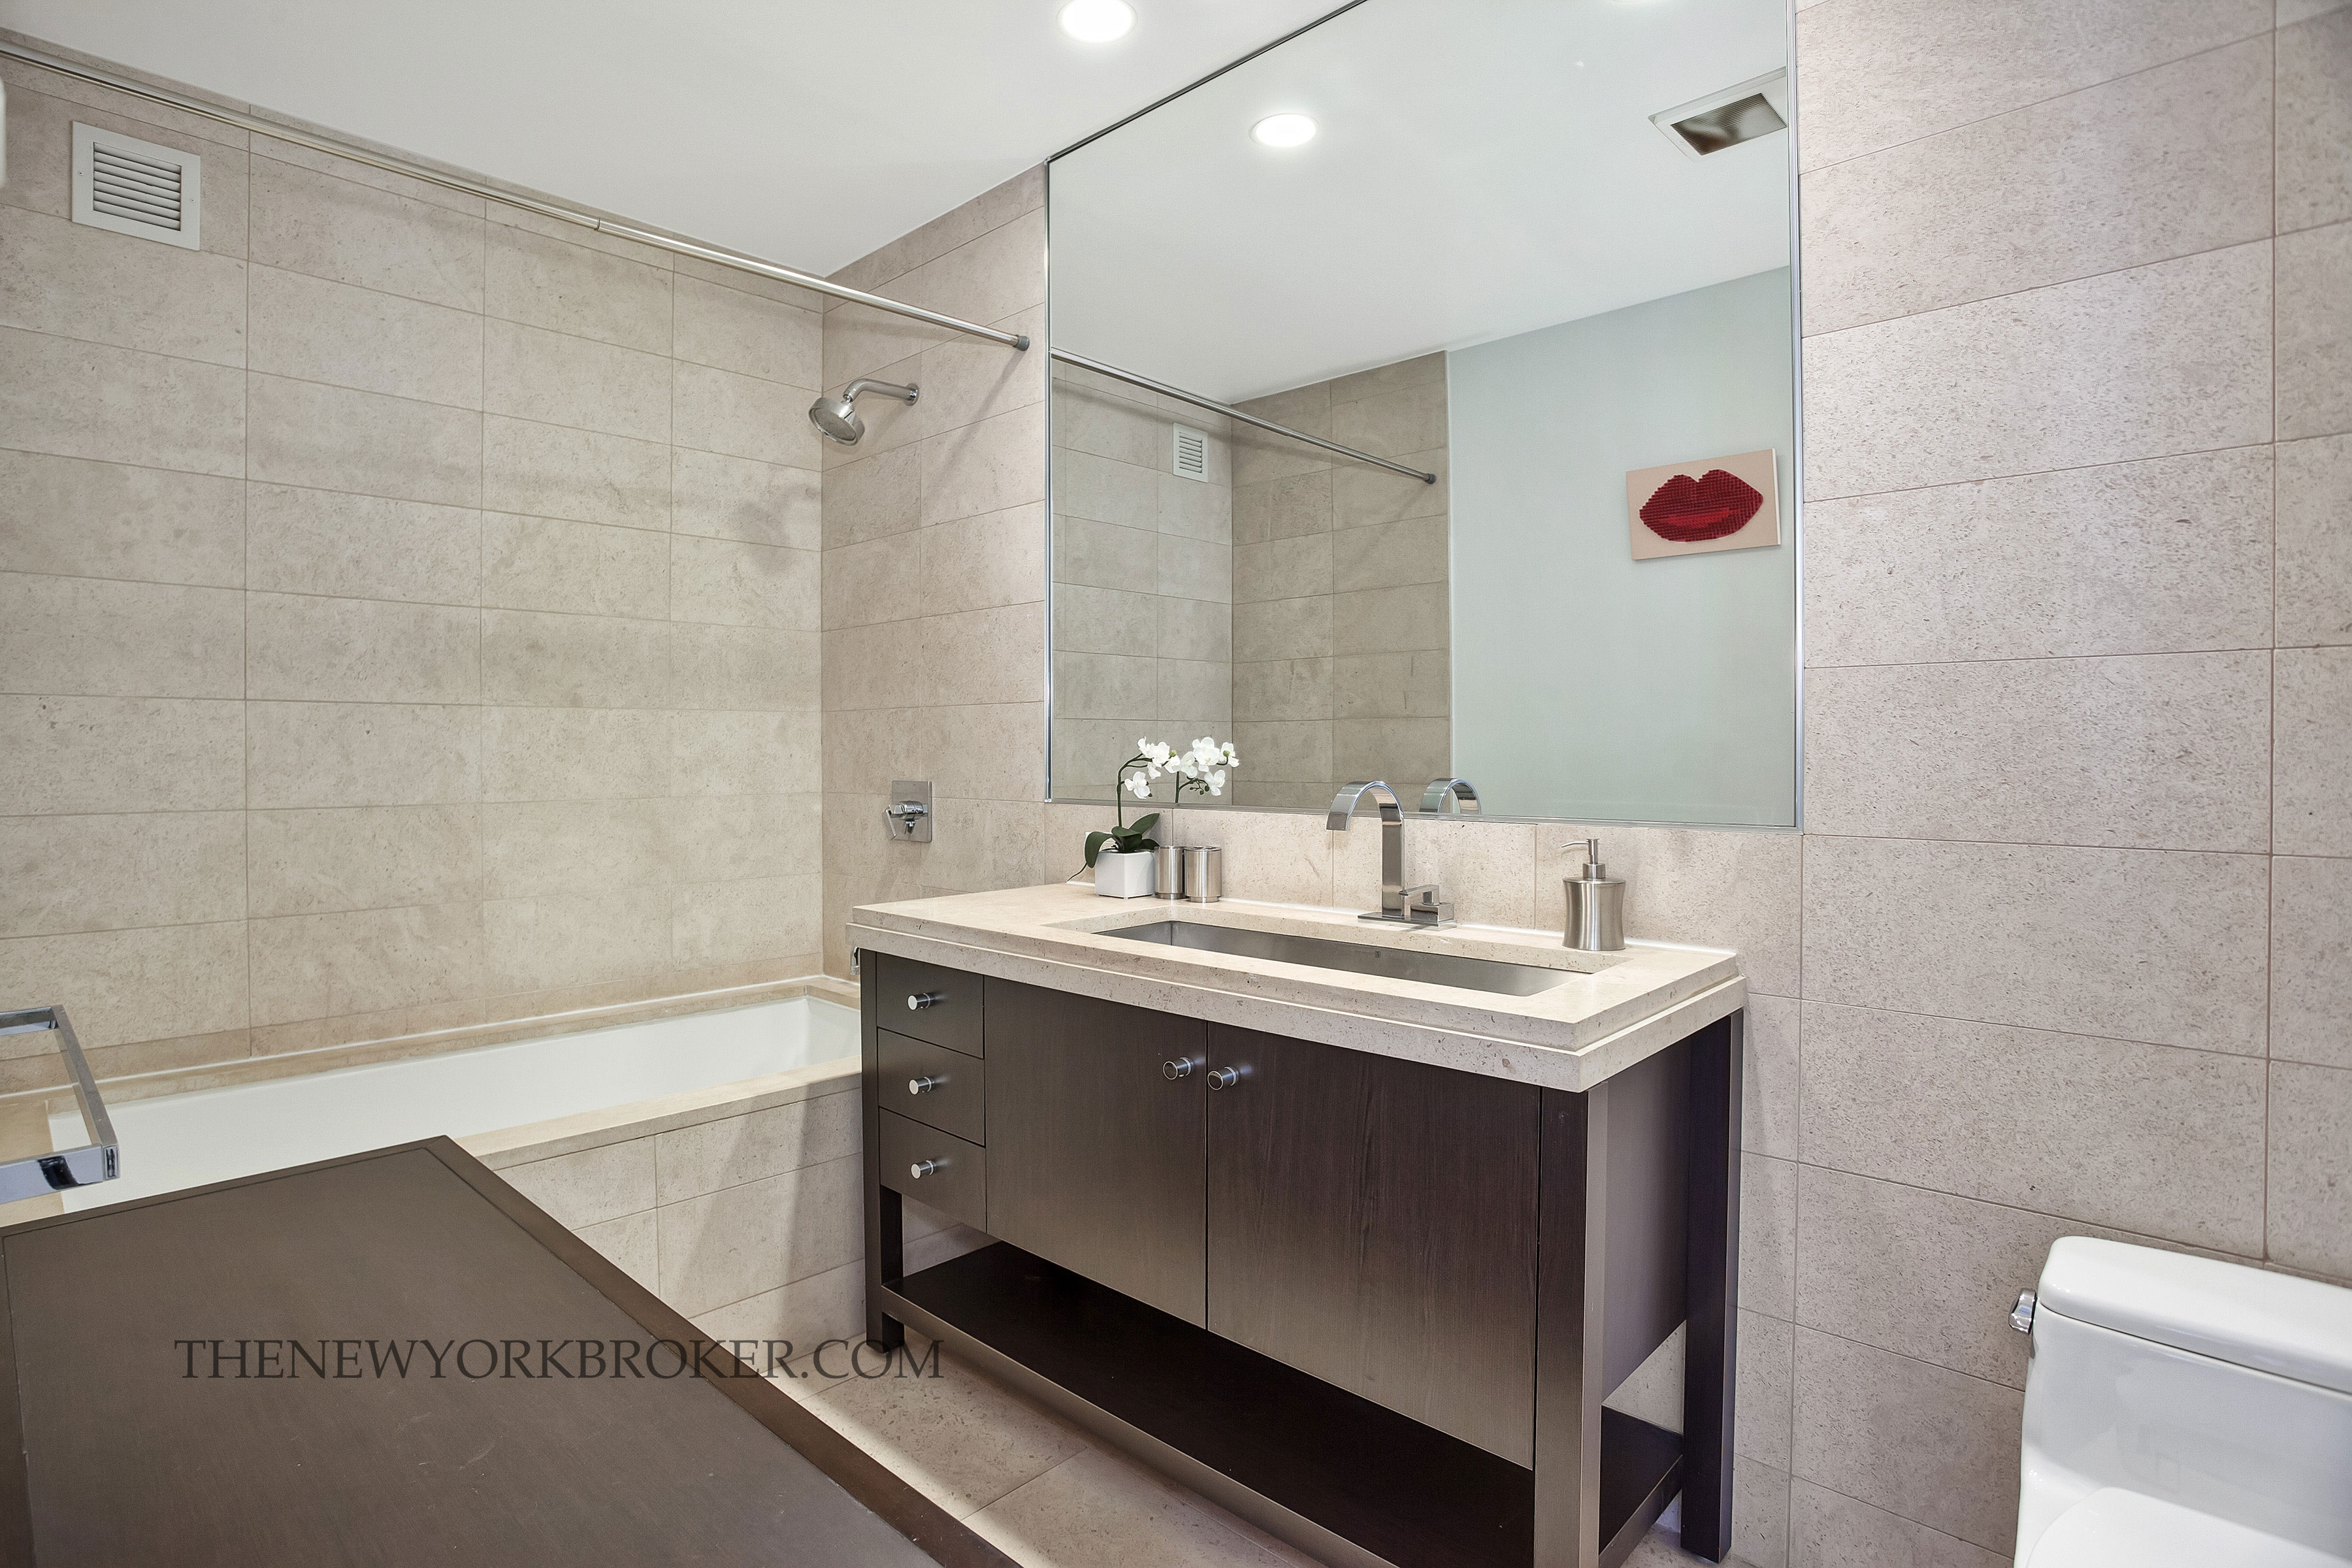 New years eve times square bathroom - 1600 Broadway Penthouse